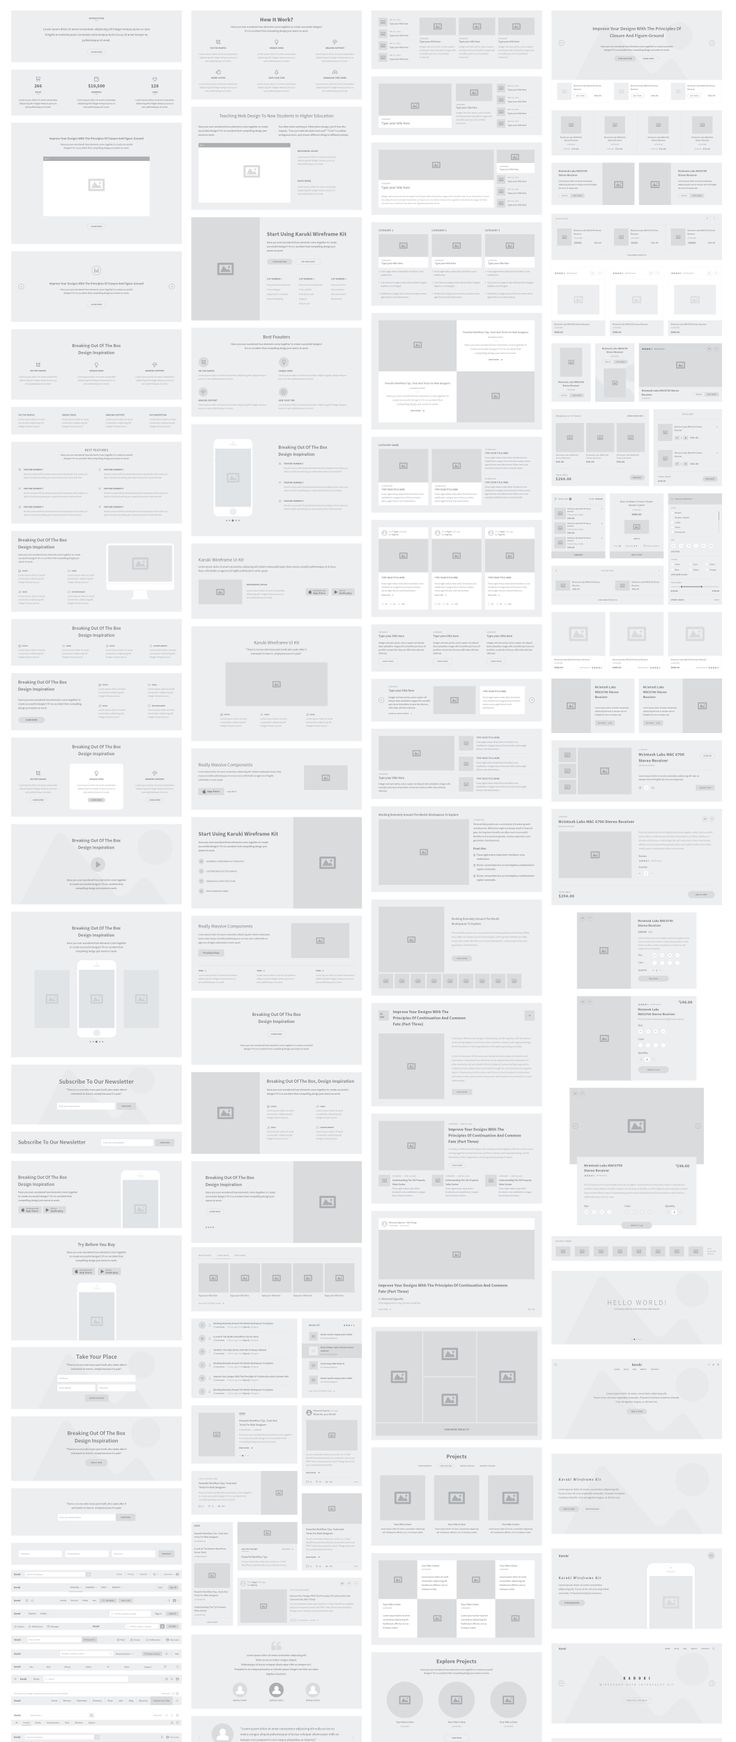 KARUKI - Web wireframe user interface kit that contains more than two hundreds components for the most popular categories to help speed up your wire-framing workflow. Compatible with Photoshop, Illustrator and Sketch!